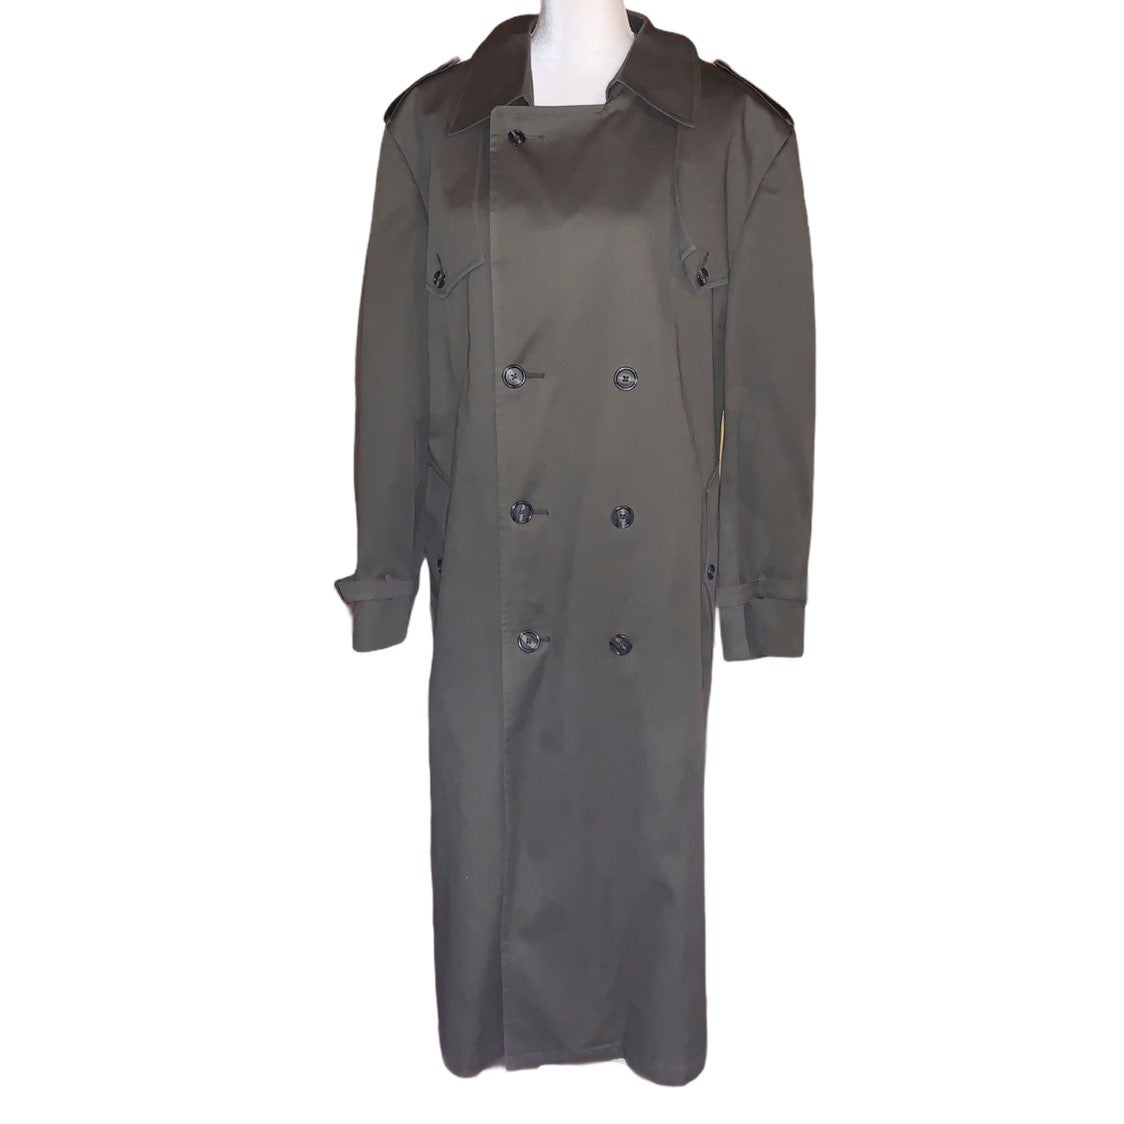 Christian Dior Wool Blend Trench Coat